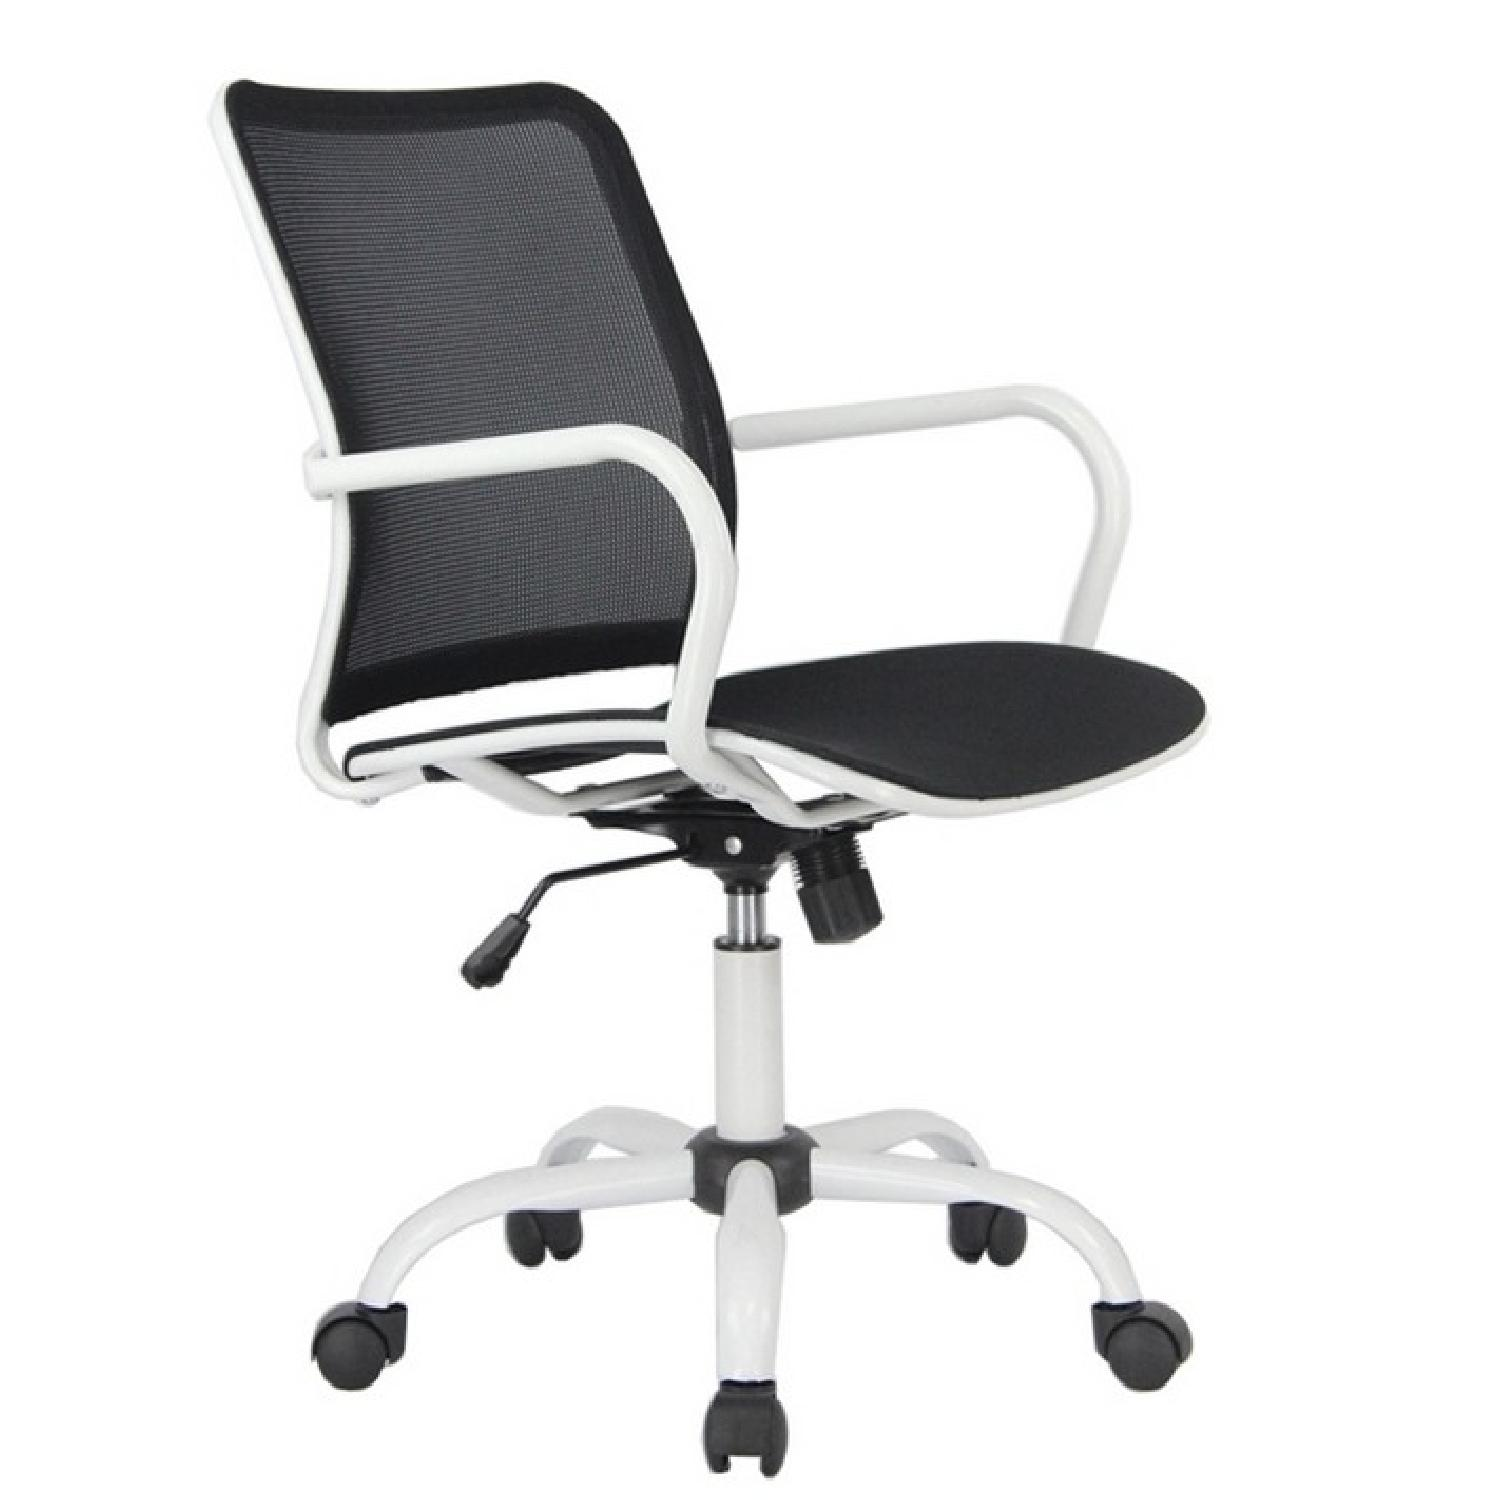 White Metal Frame Modern Office Chair w/ Black Mesh Seat & B